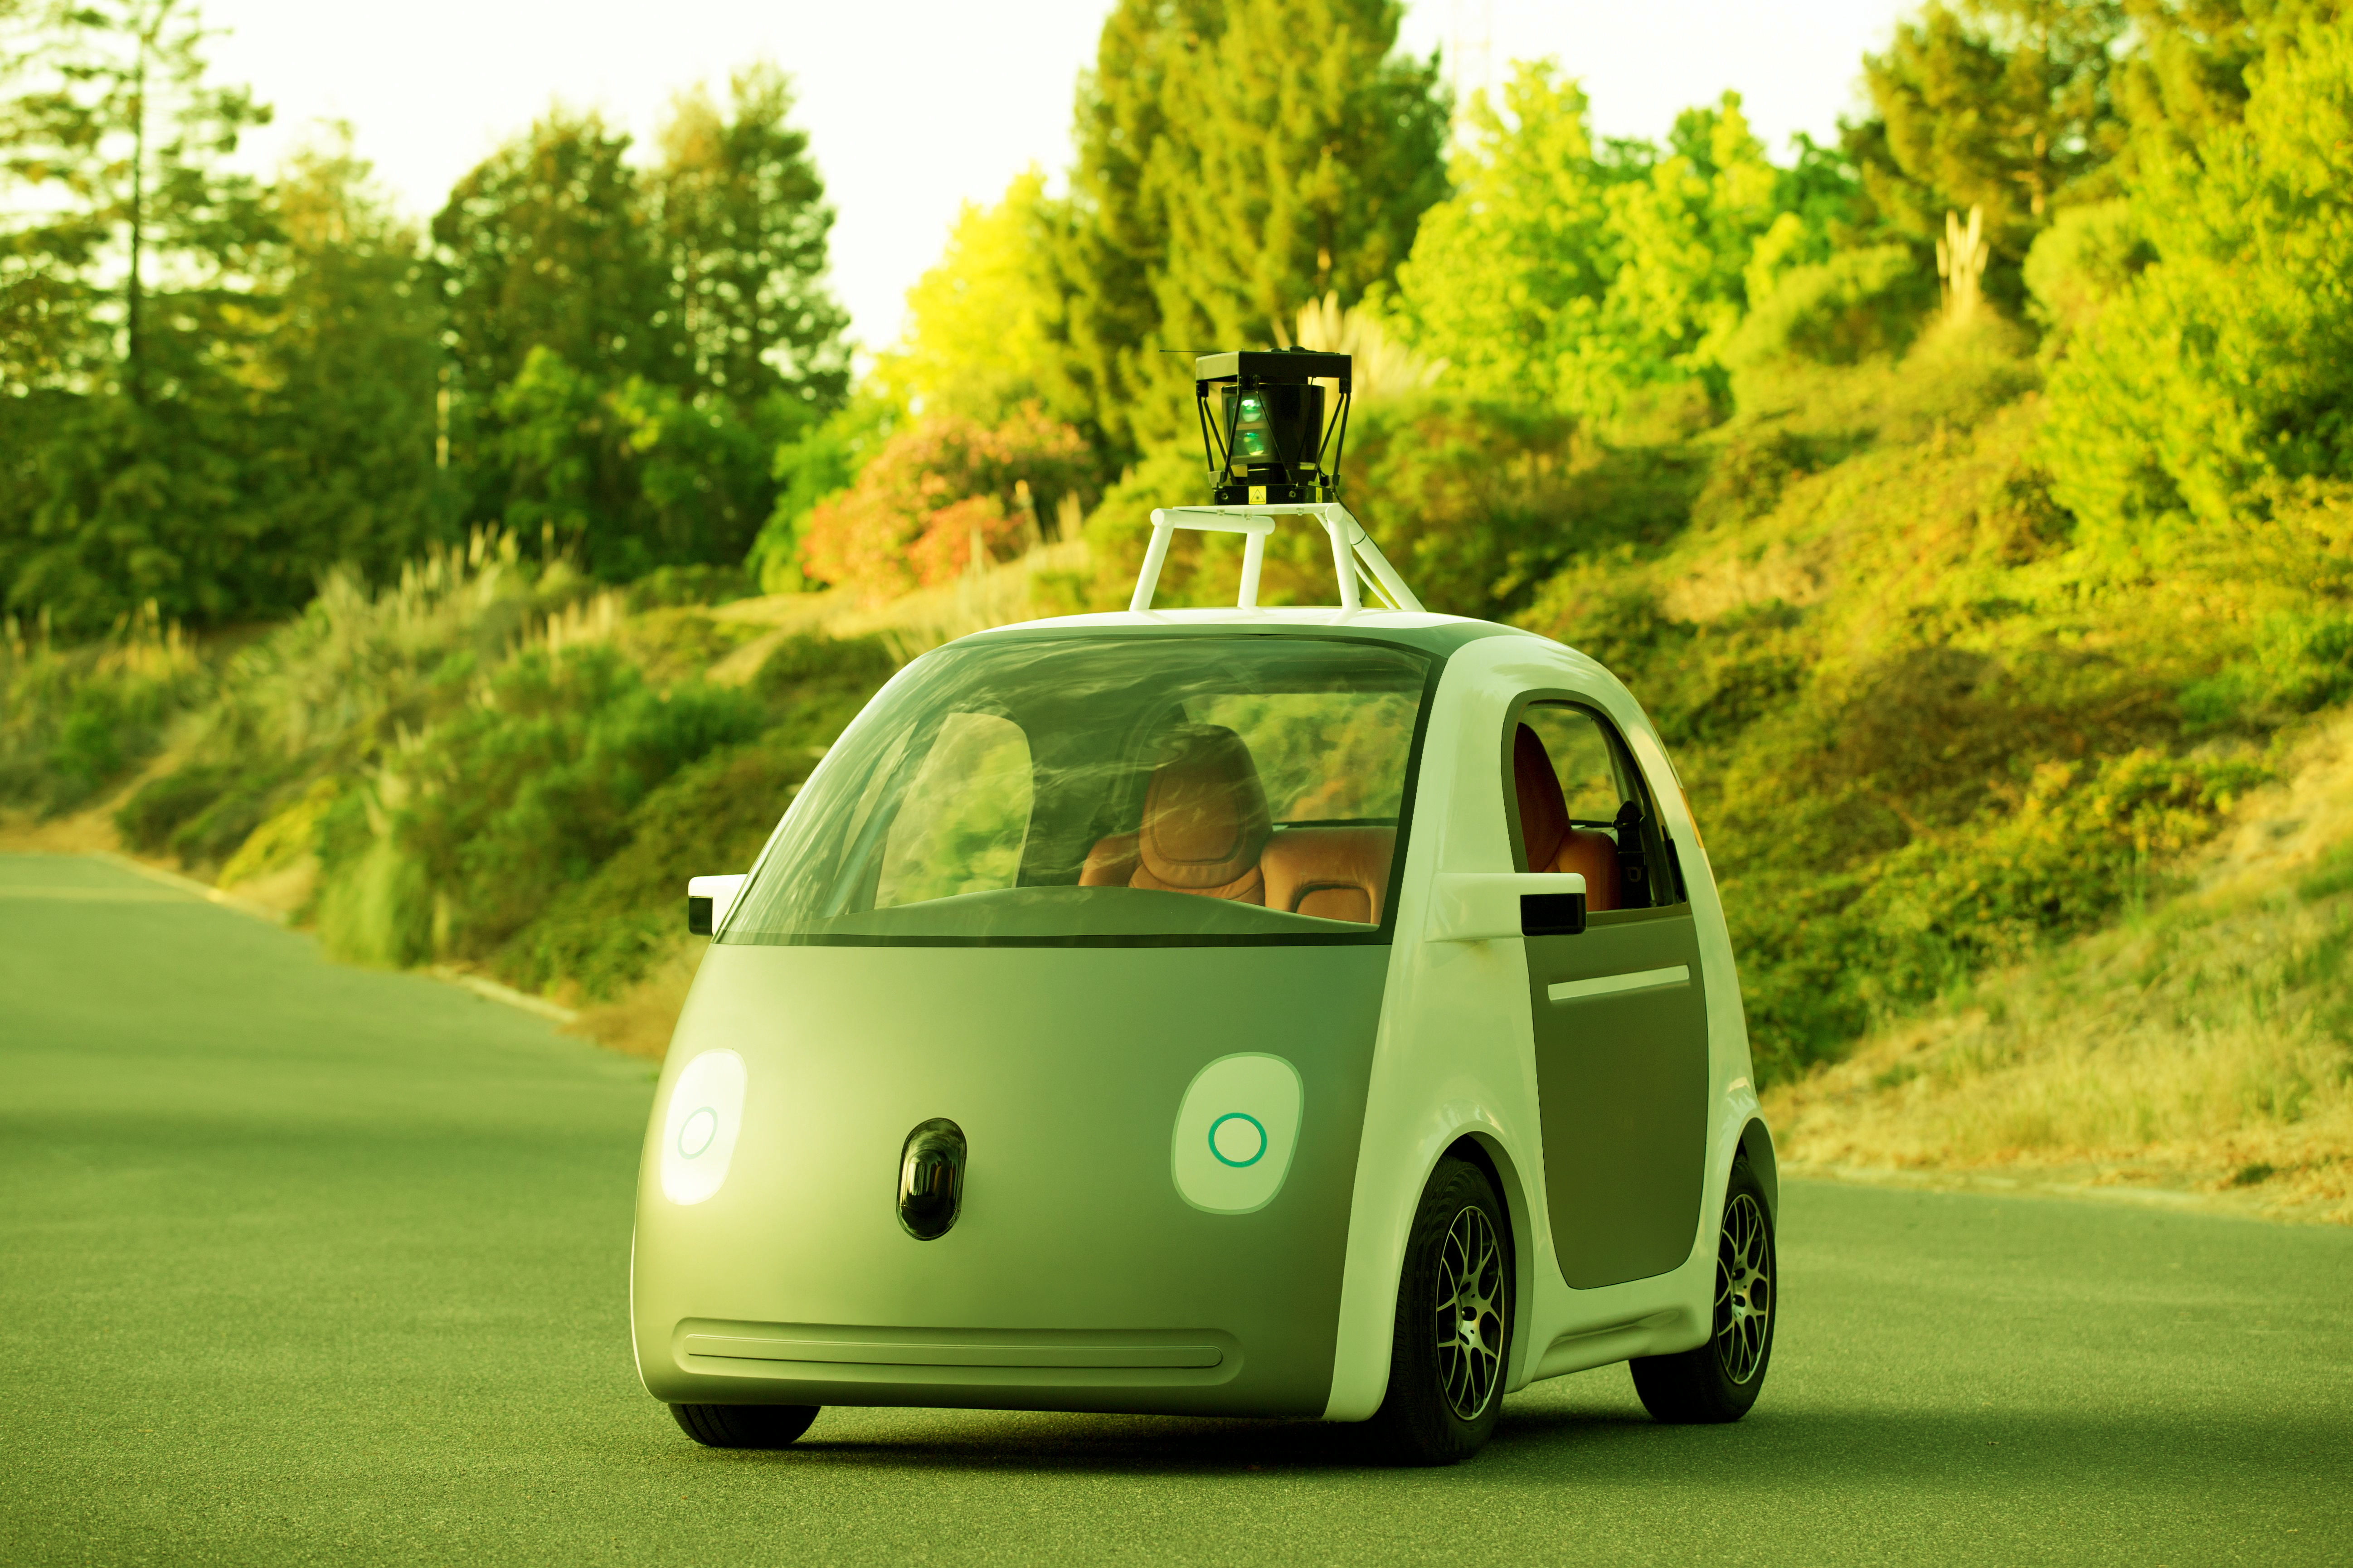 BBC Conversation: How Green is Google's Driverless Car?